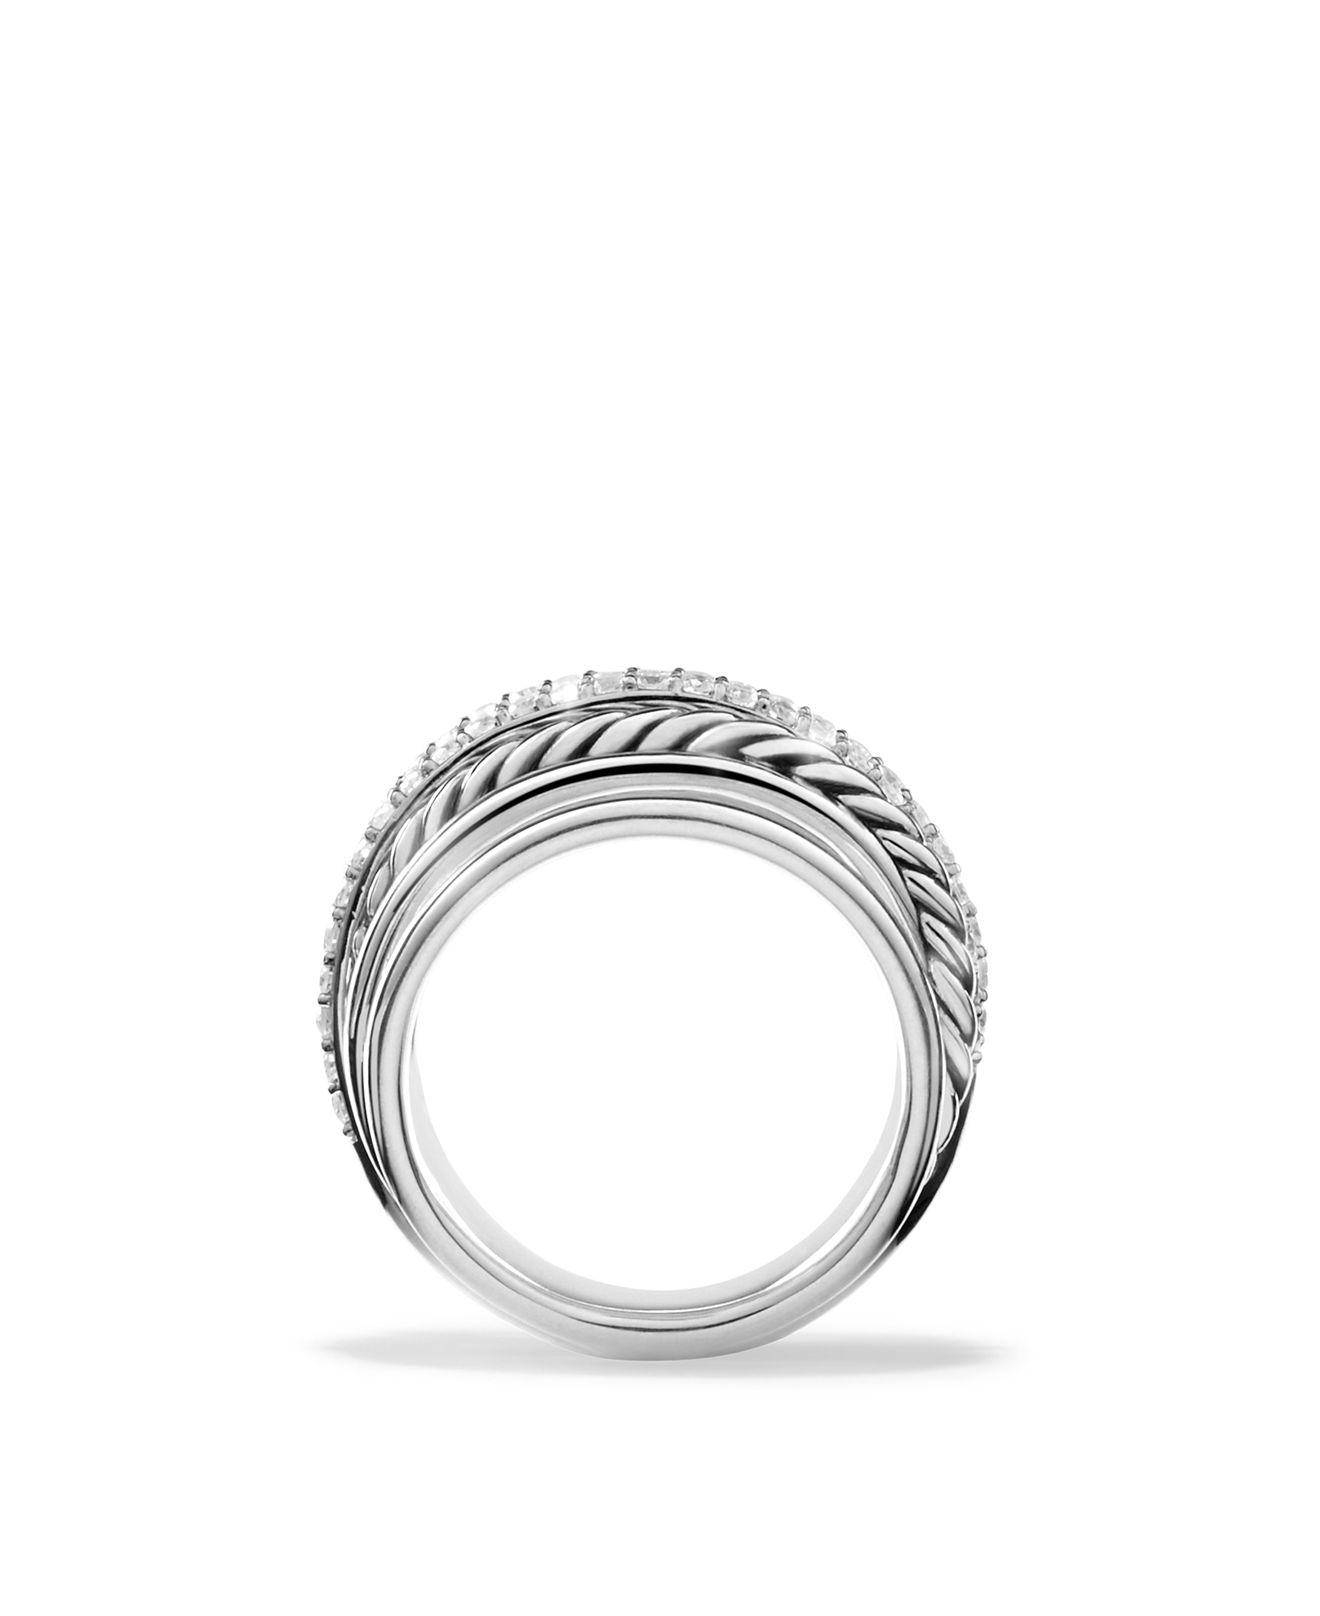 David Yurman Crossover Dome Ring With Diamonds In Metallic | Lyst For Bloomingdales Wedding Bands (View 12 of 16)